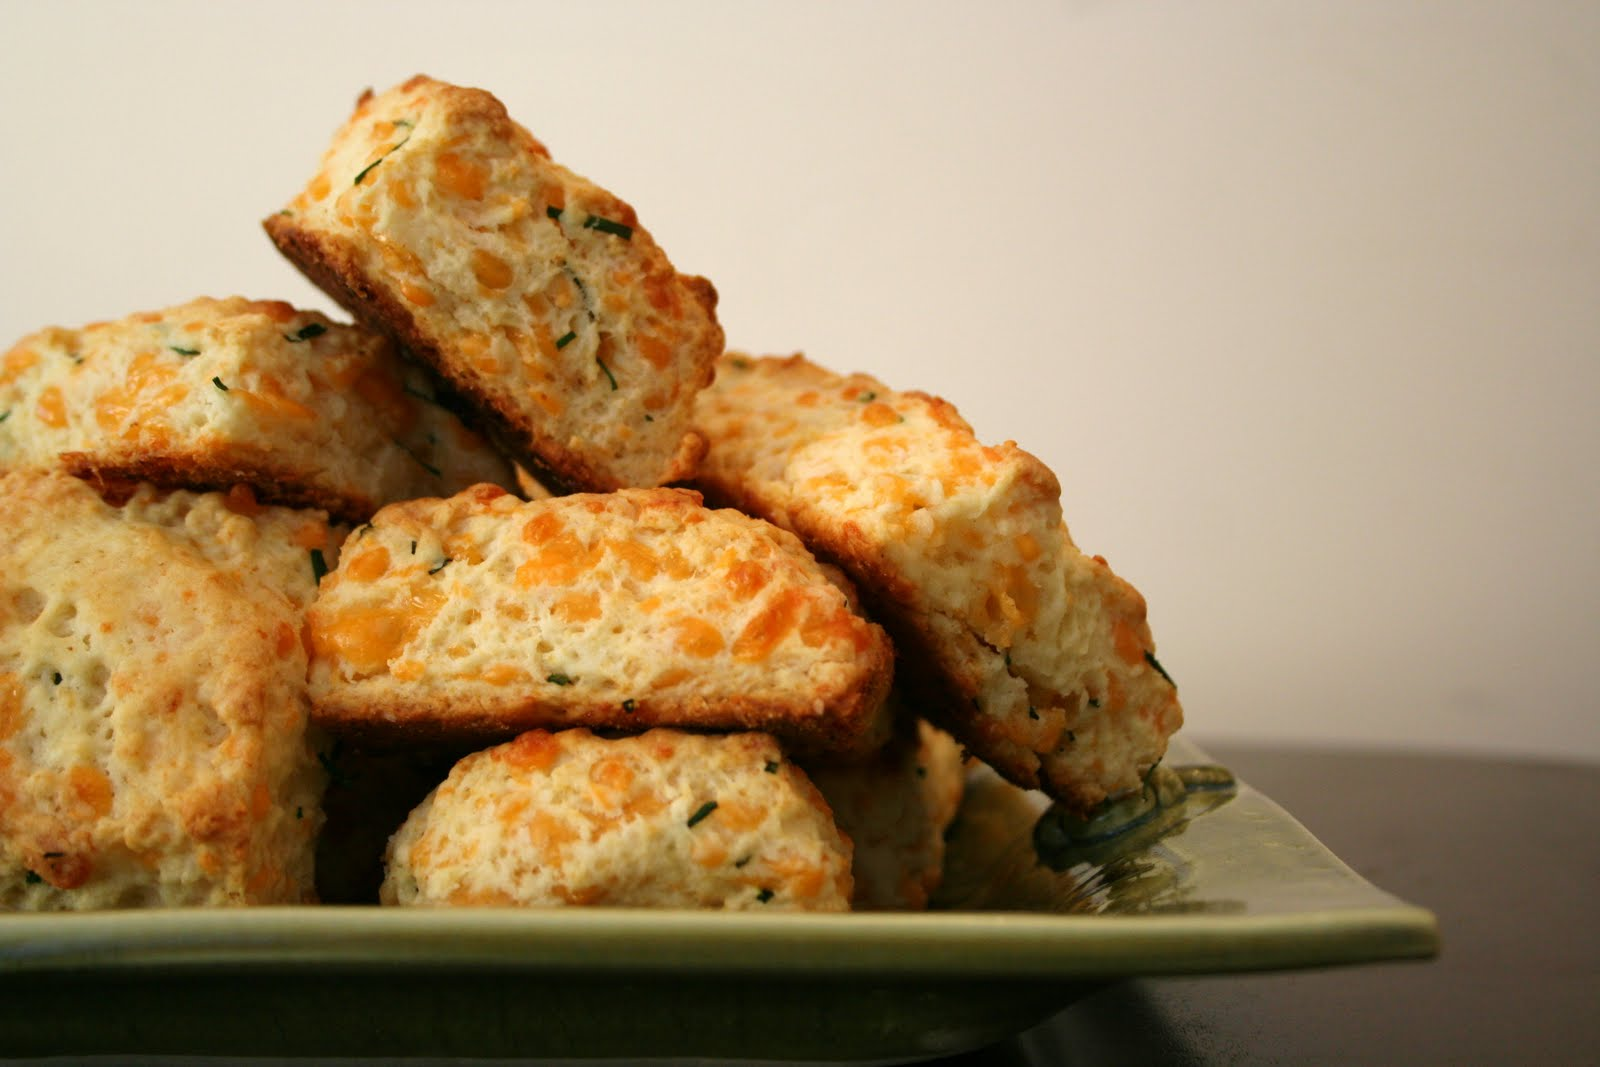 ... without herbs just cheddar cheddar biscuits ham are a perfect match